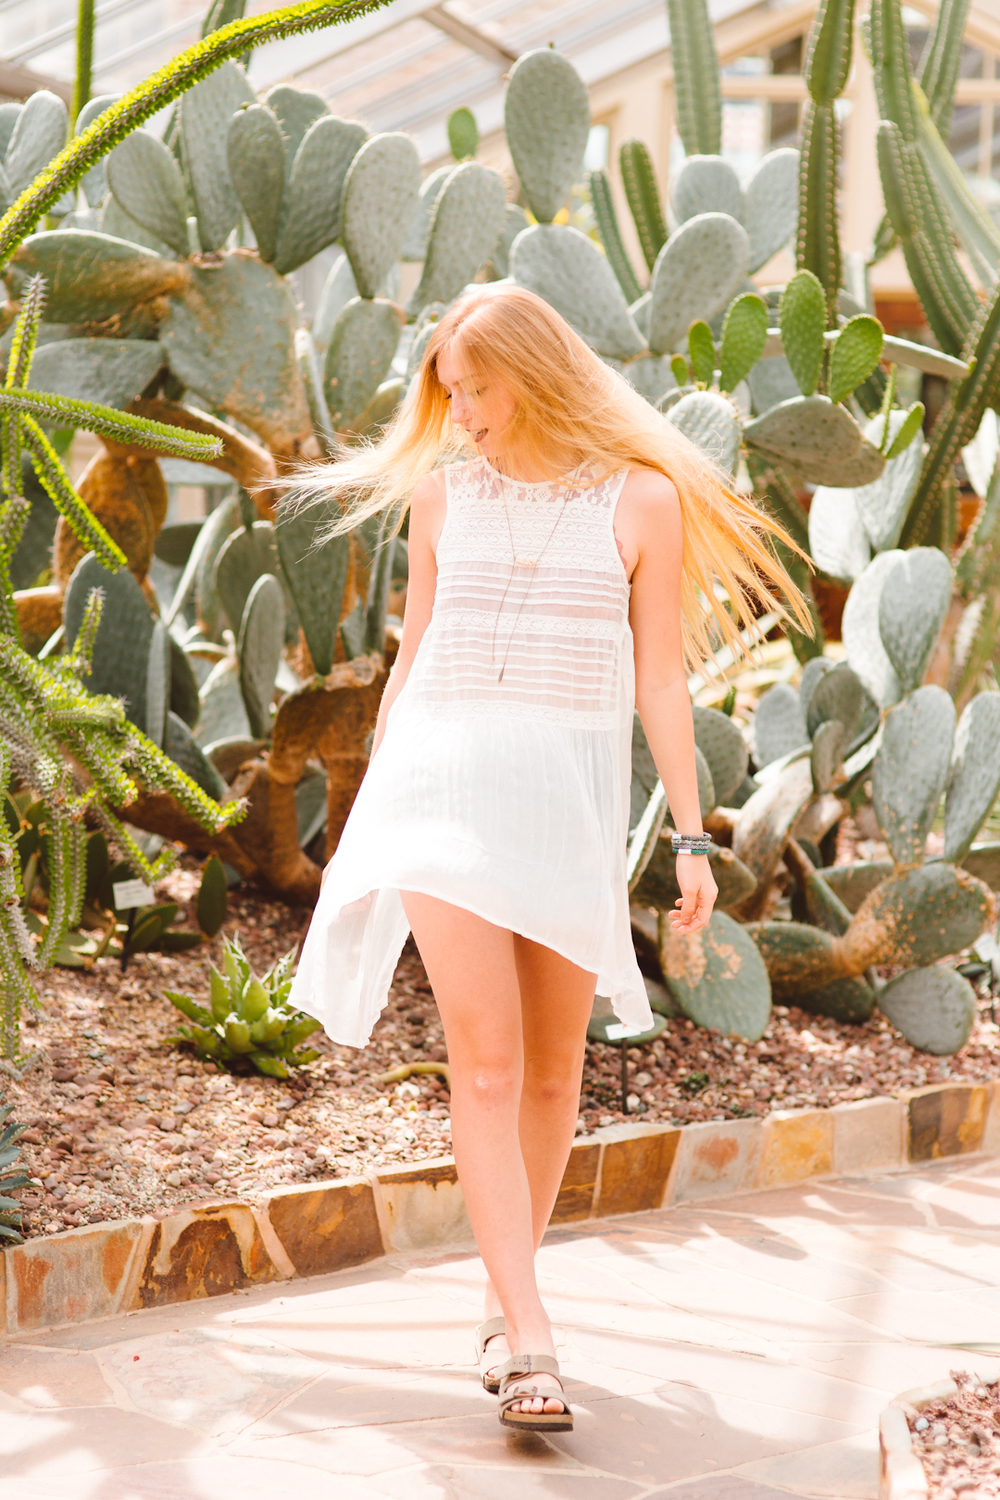 baltimore-maryland-boutique-desert-look-book-at-rawlings-conservatory-brooke-michelle-photography-18.jpg